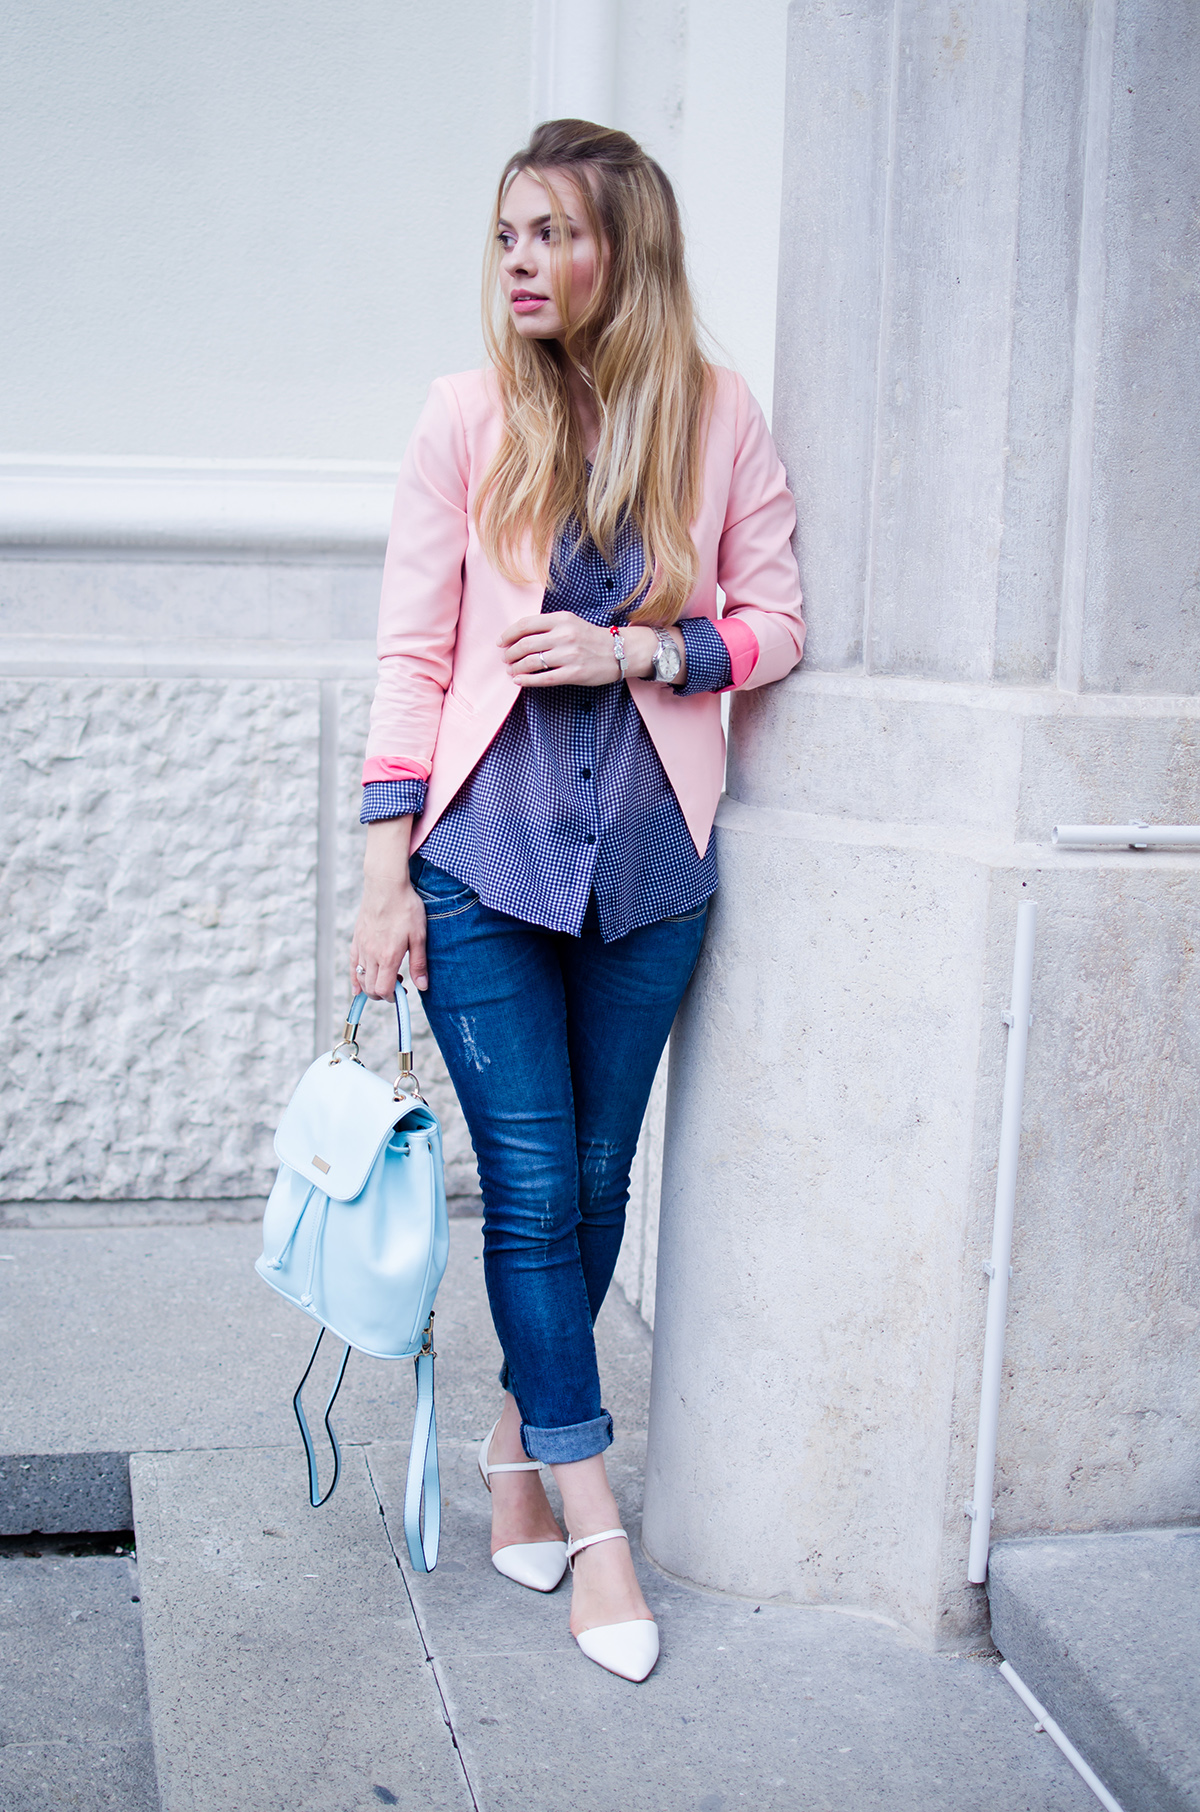 pink-blazer-skinny-jeans-white-pointed-flats-blue-backback-back-to-college (10)